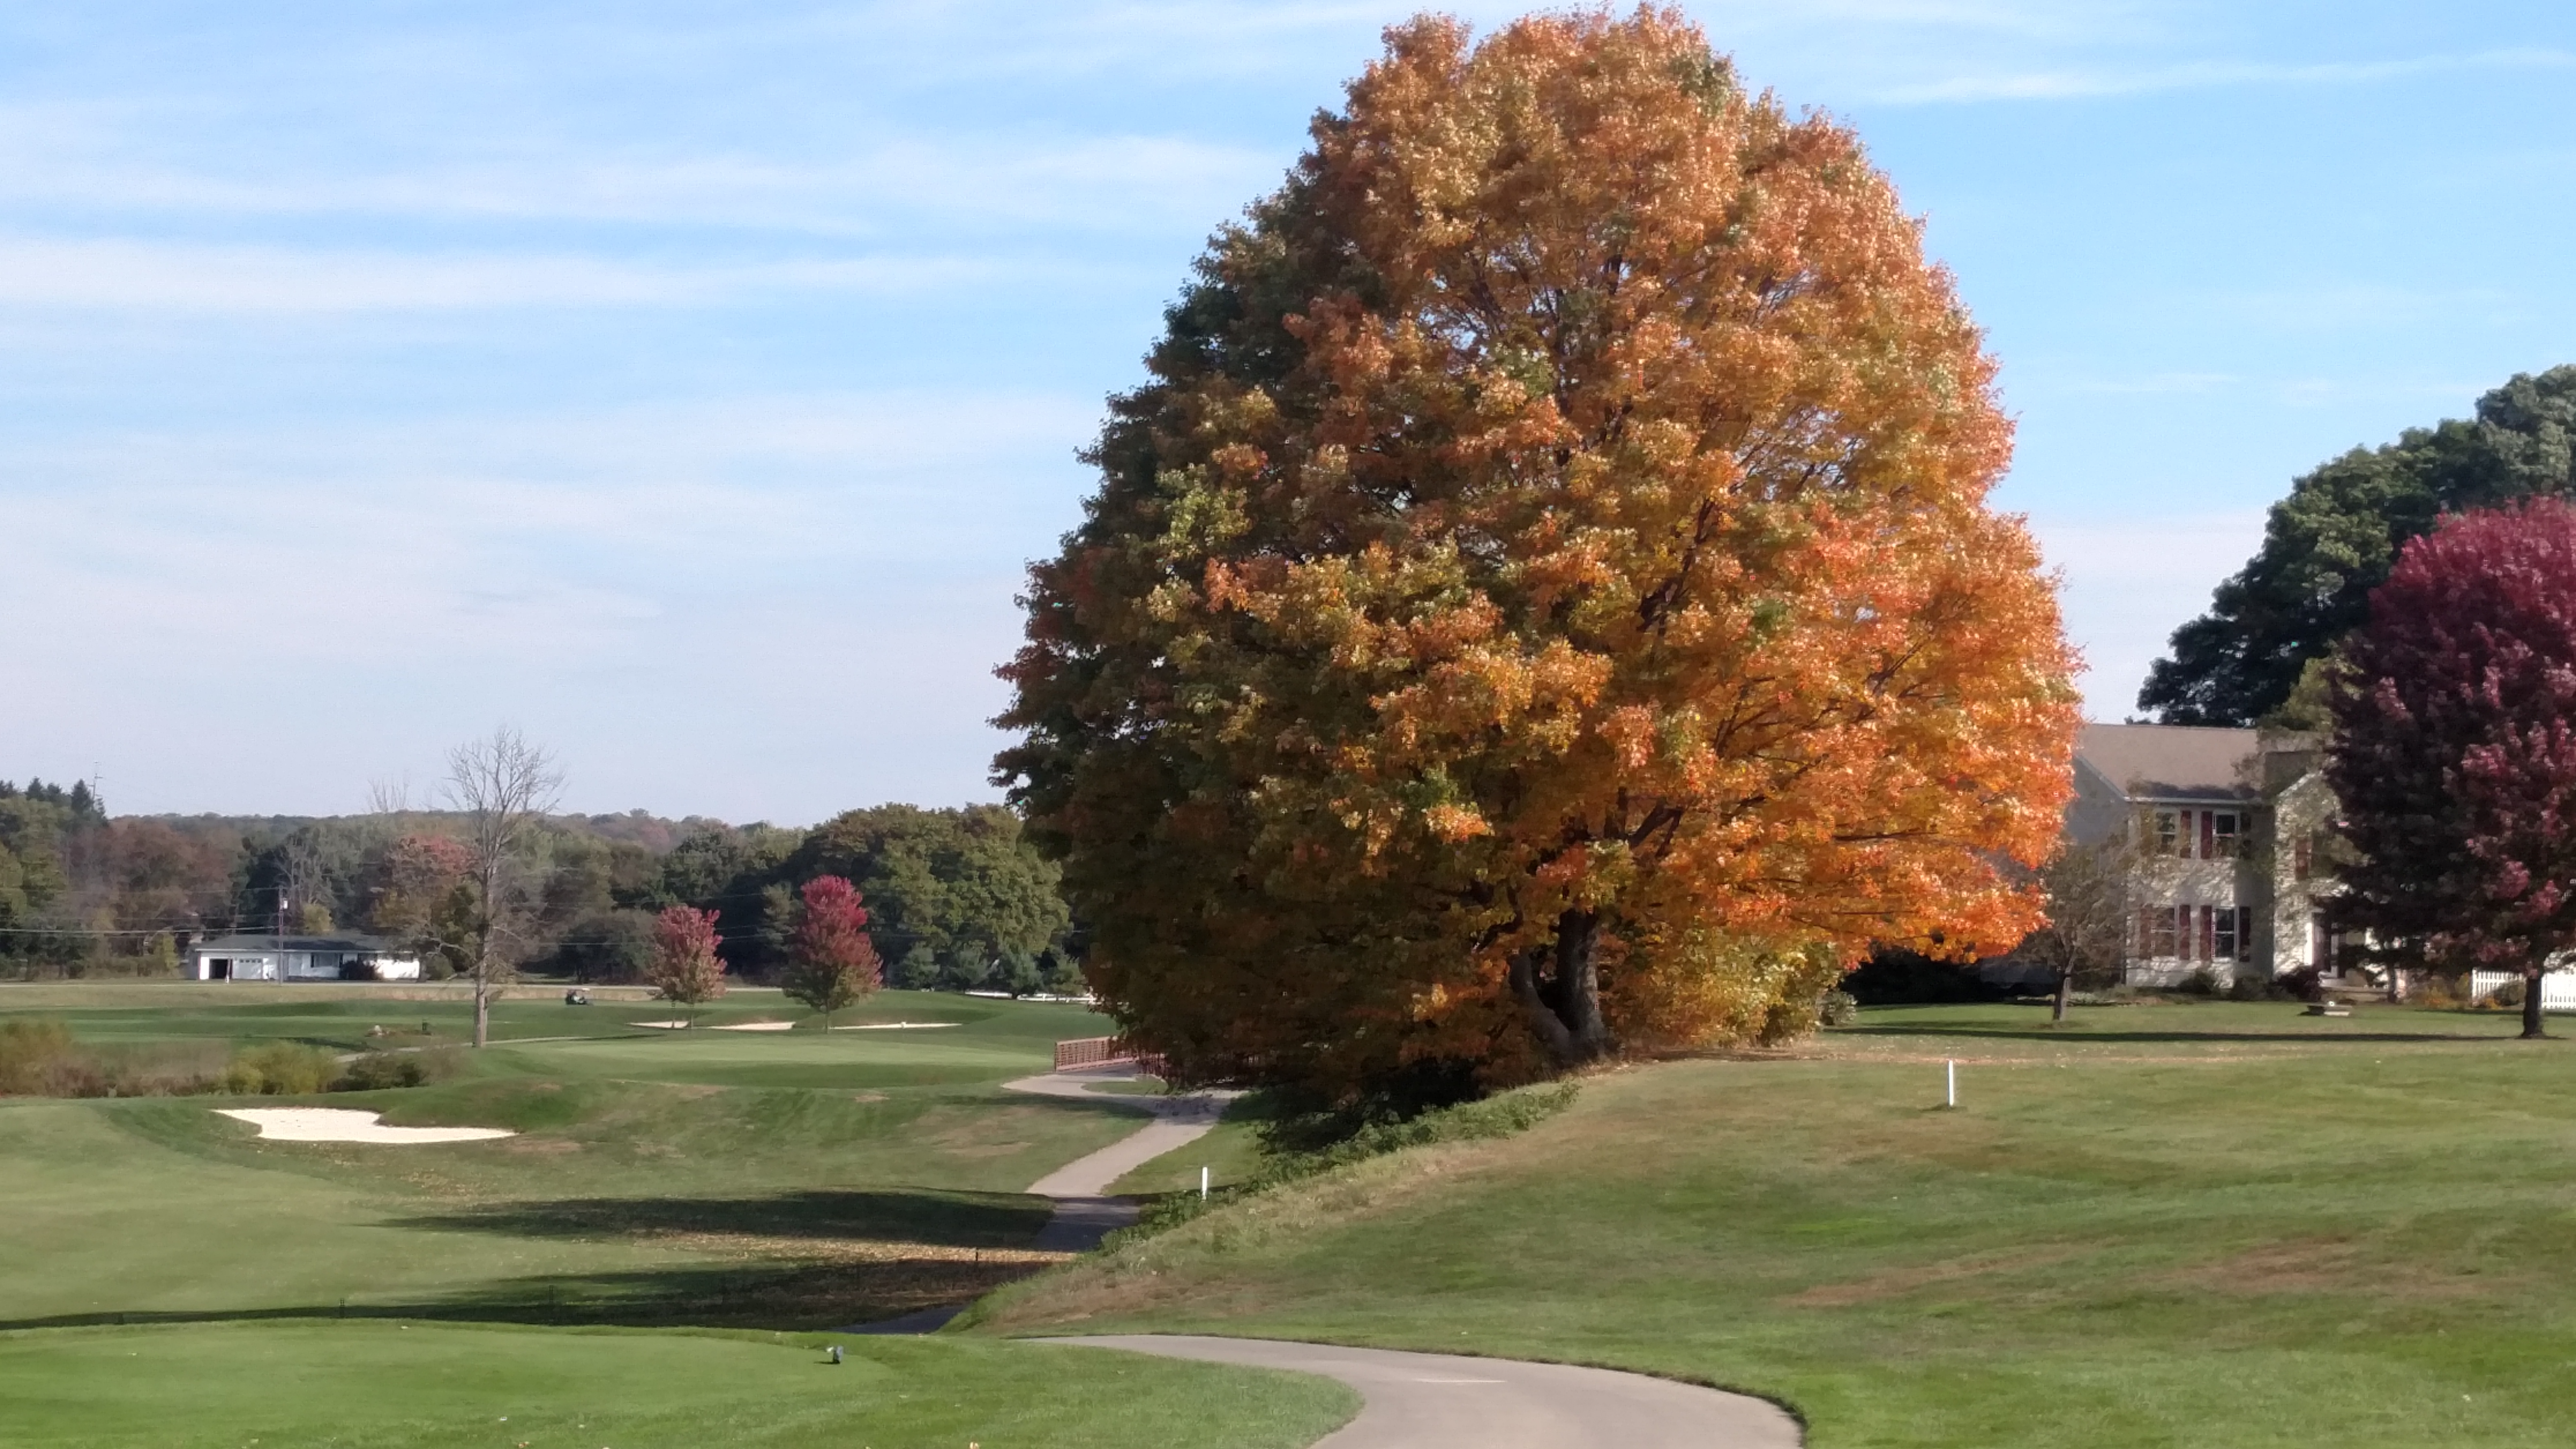 Picture from the tee box on #10 at Shale Creek CC in late October.